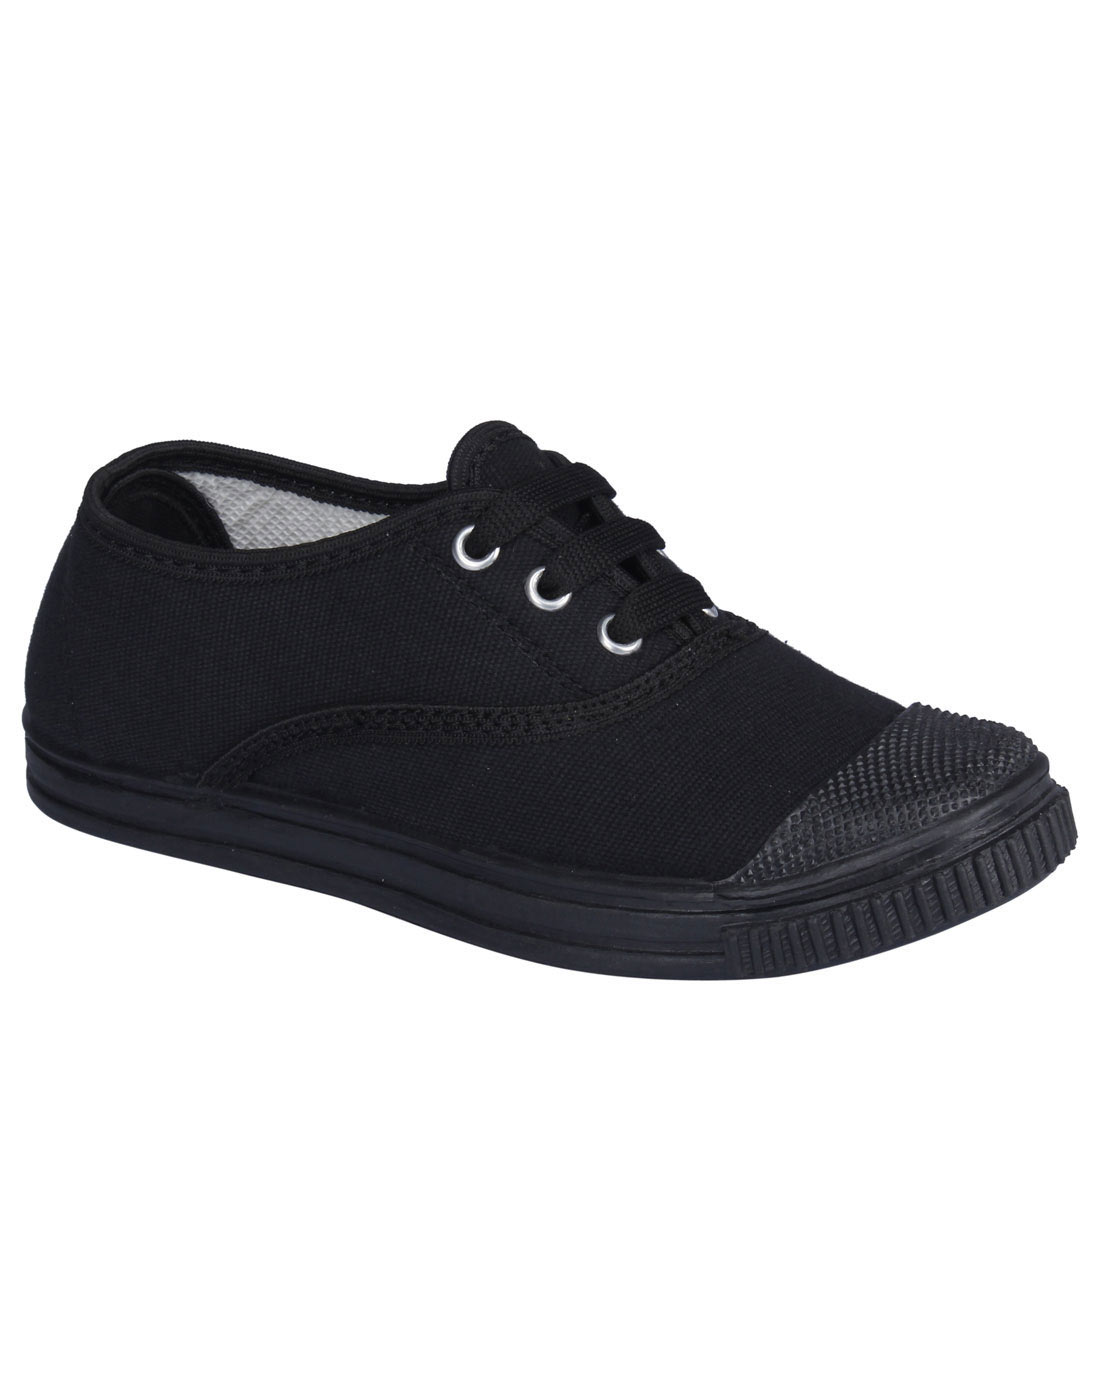 Black Girls Shoes Sale: Save Up to 60% Off! Shop gravitybox.ga's huge selection of Black Shoes for Girls - Over styles available. FREE Shipping & Exchanges, and a % price guarantee!